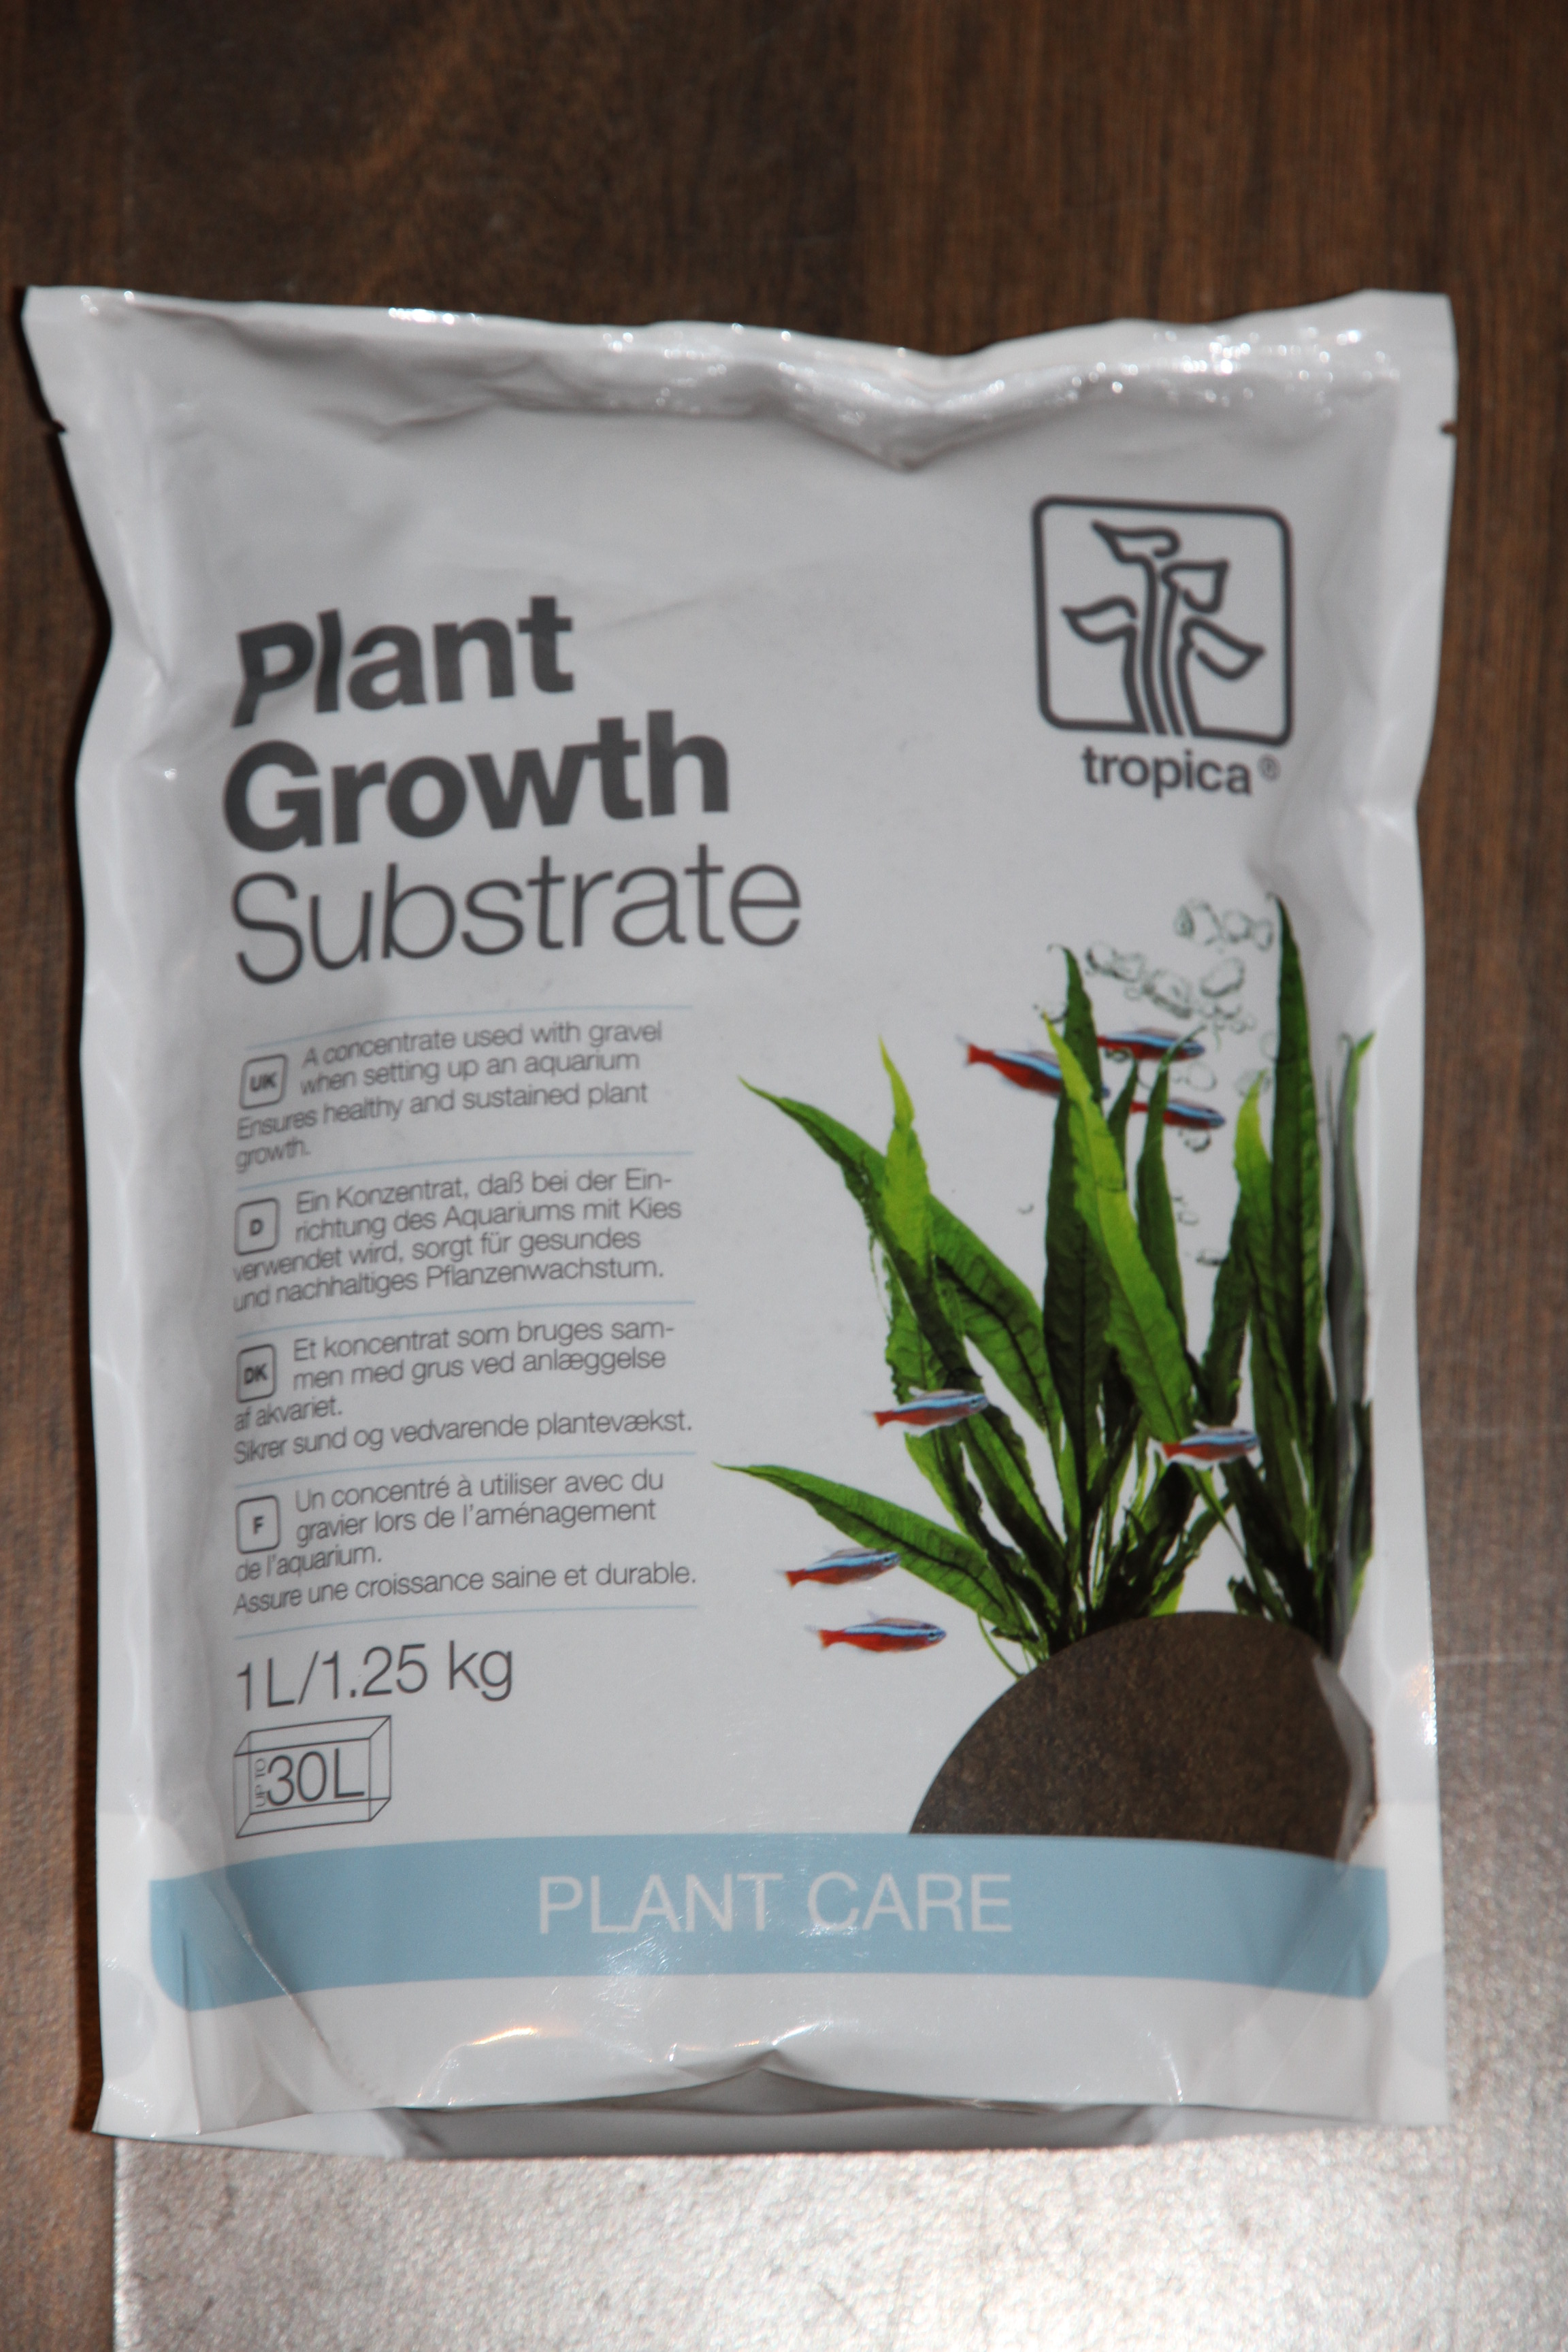 Tropica Plant Growth Substrate 1 Litre (1.25 kg)